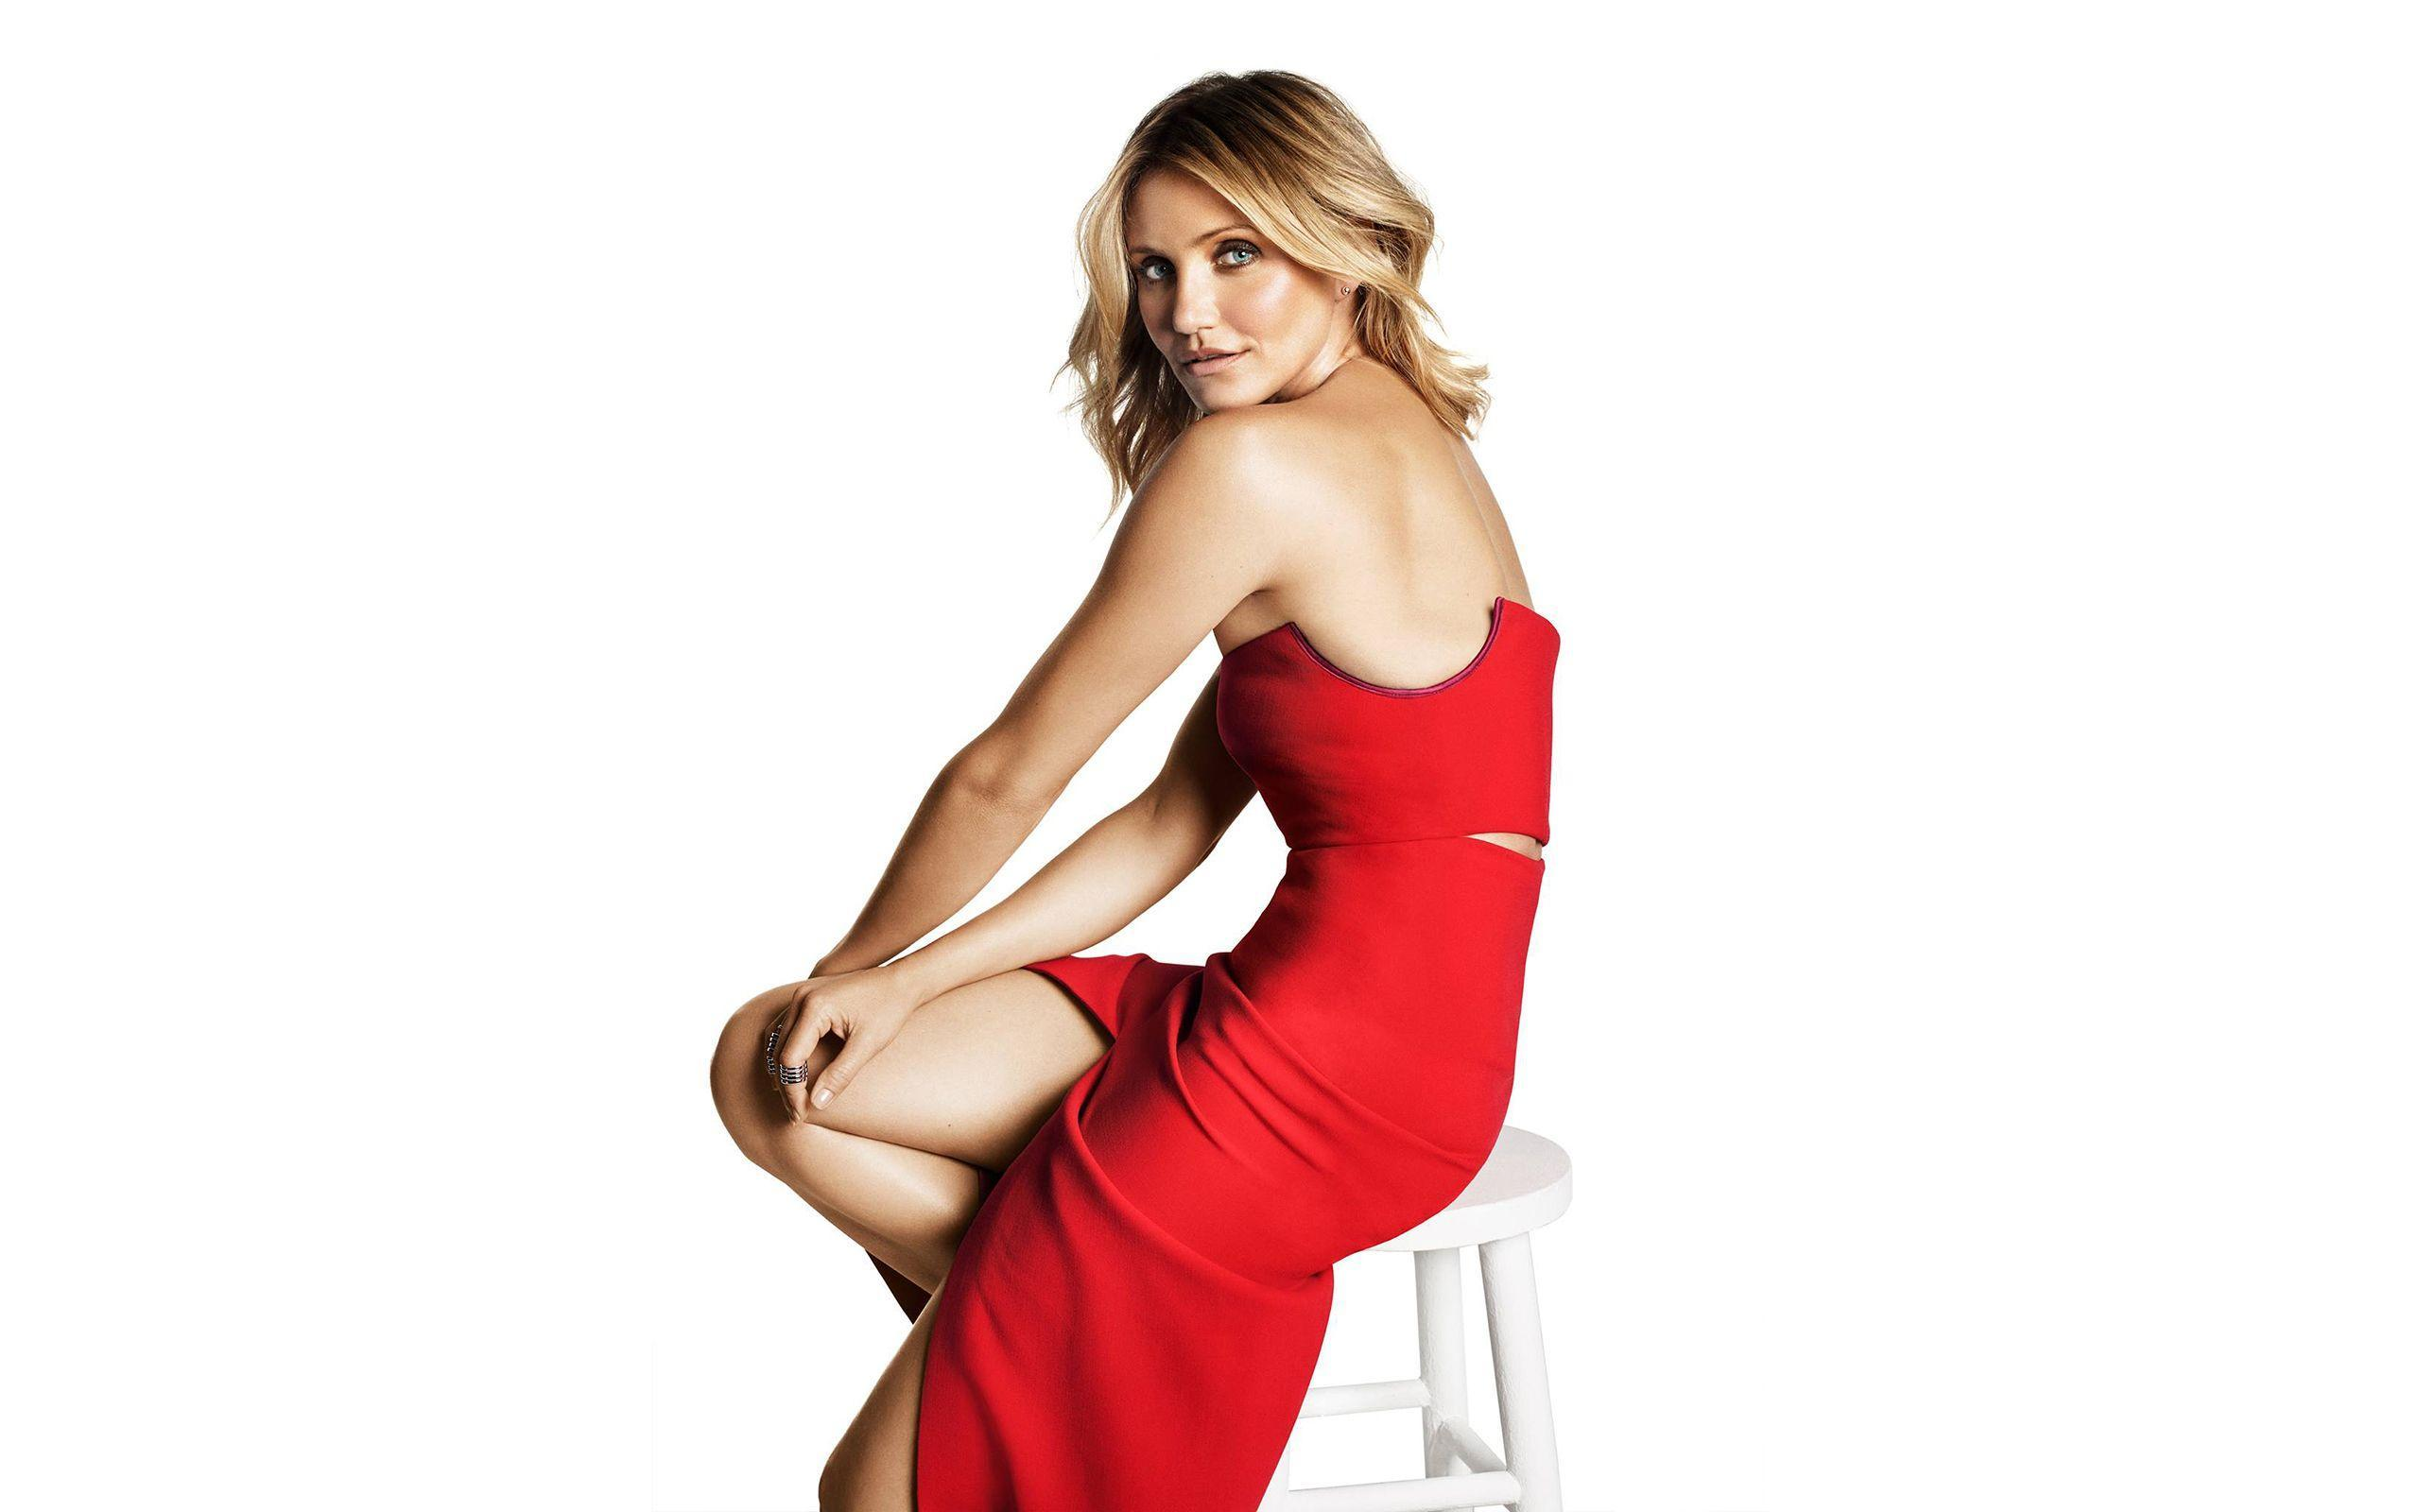 Cameron Diaz Wallpapers | HD Wallpapers